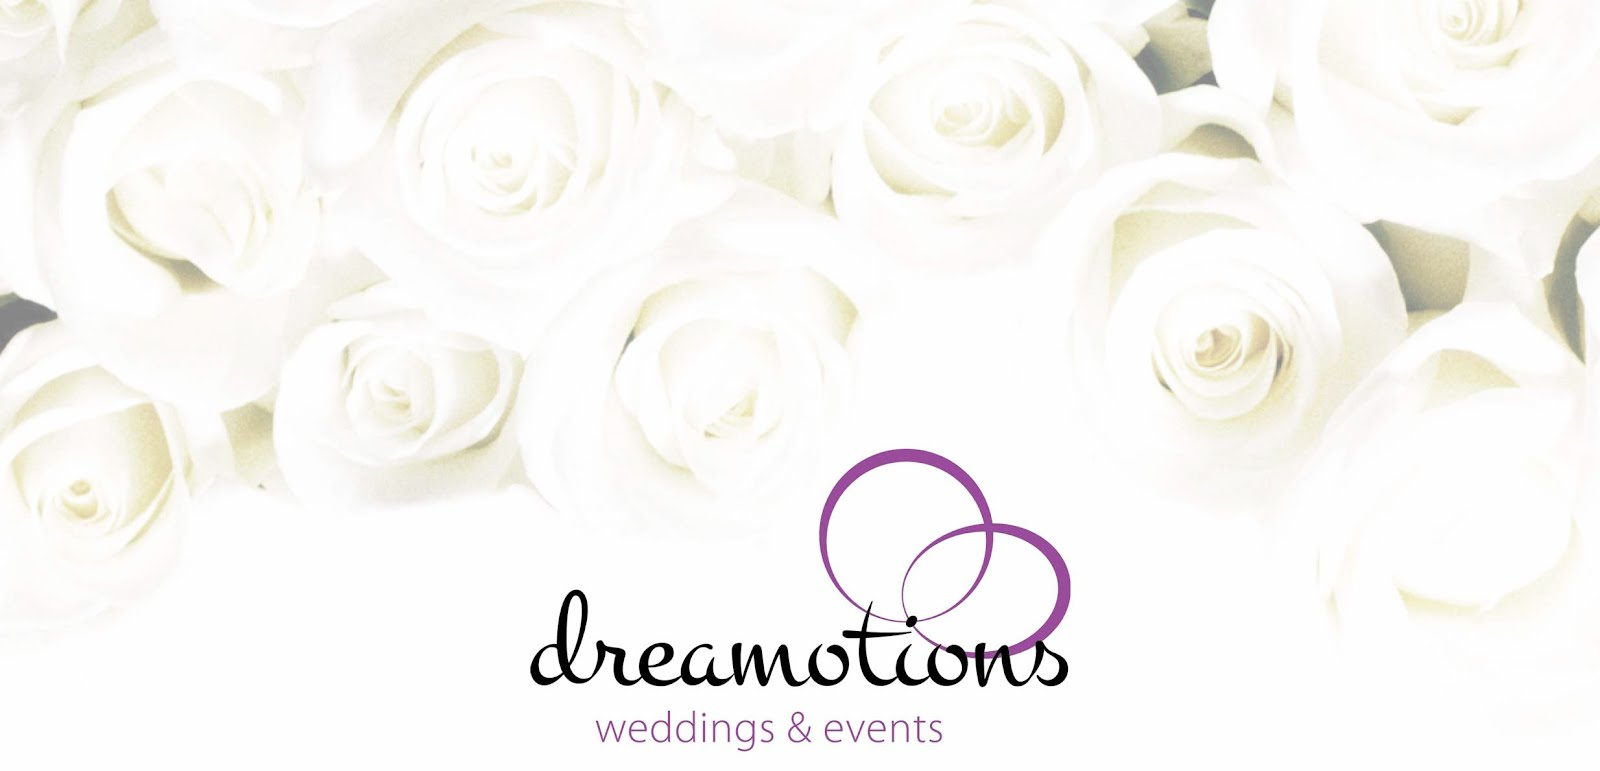 Weddings by dreamotions